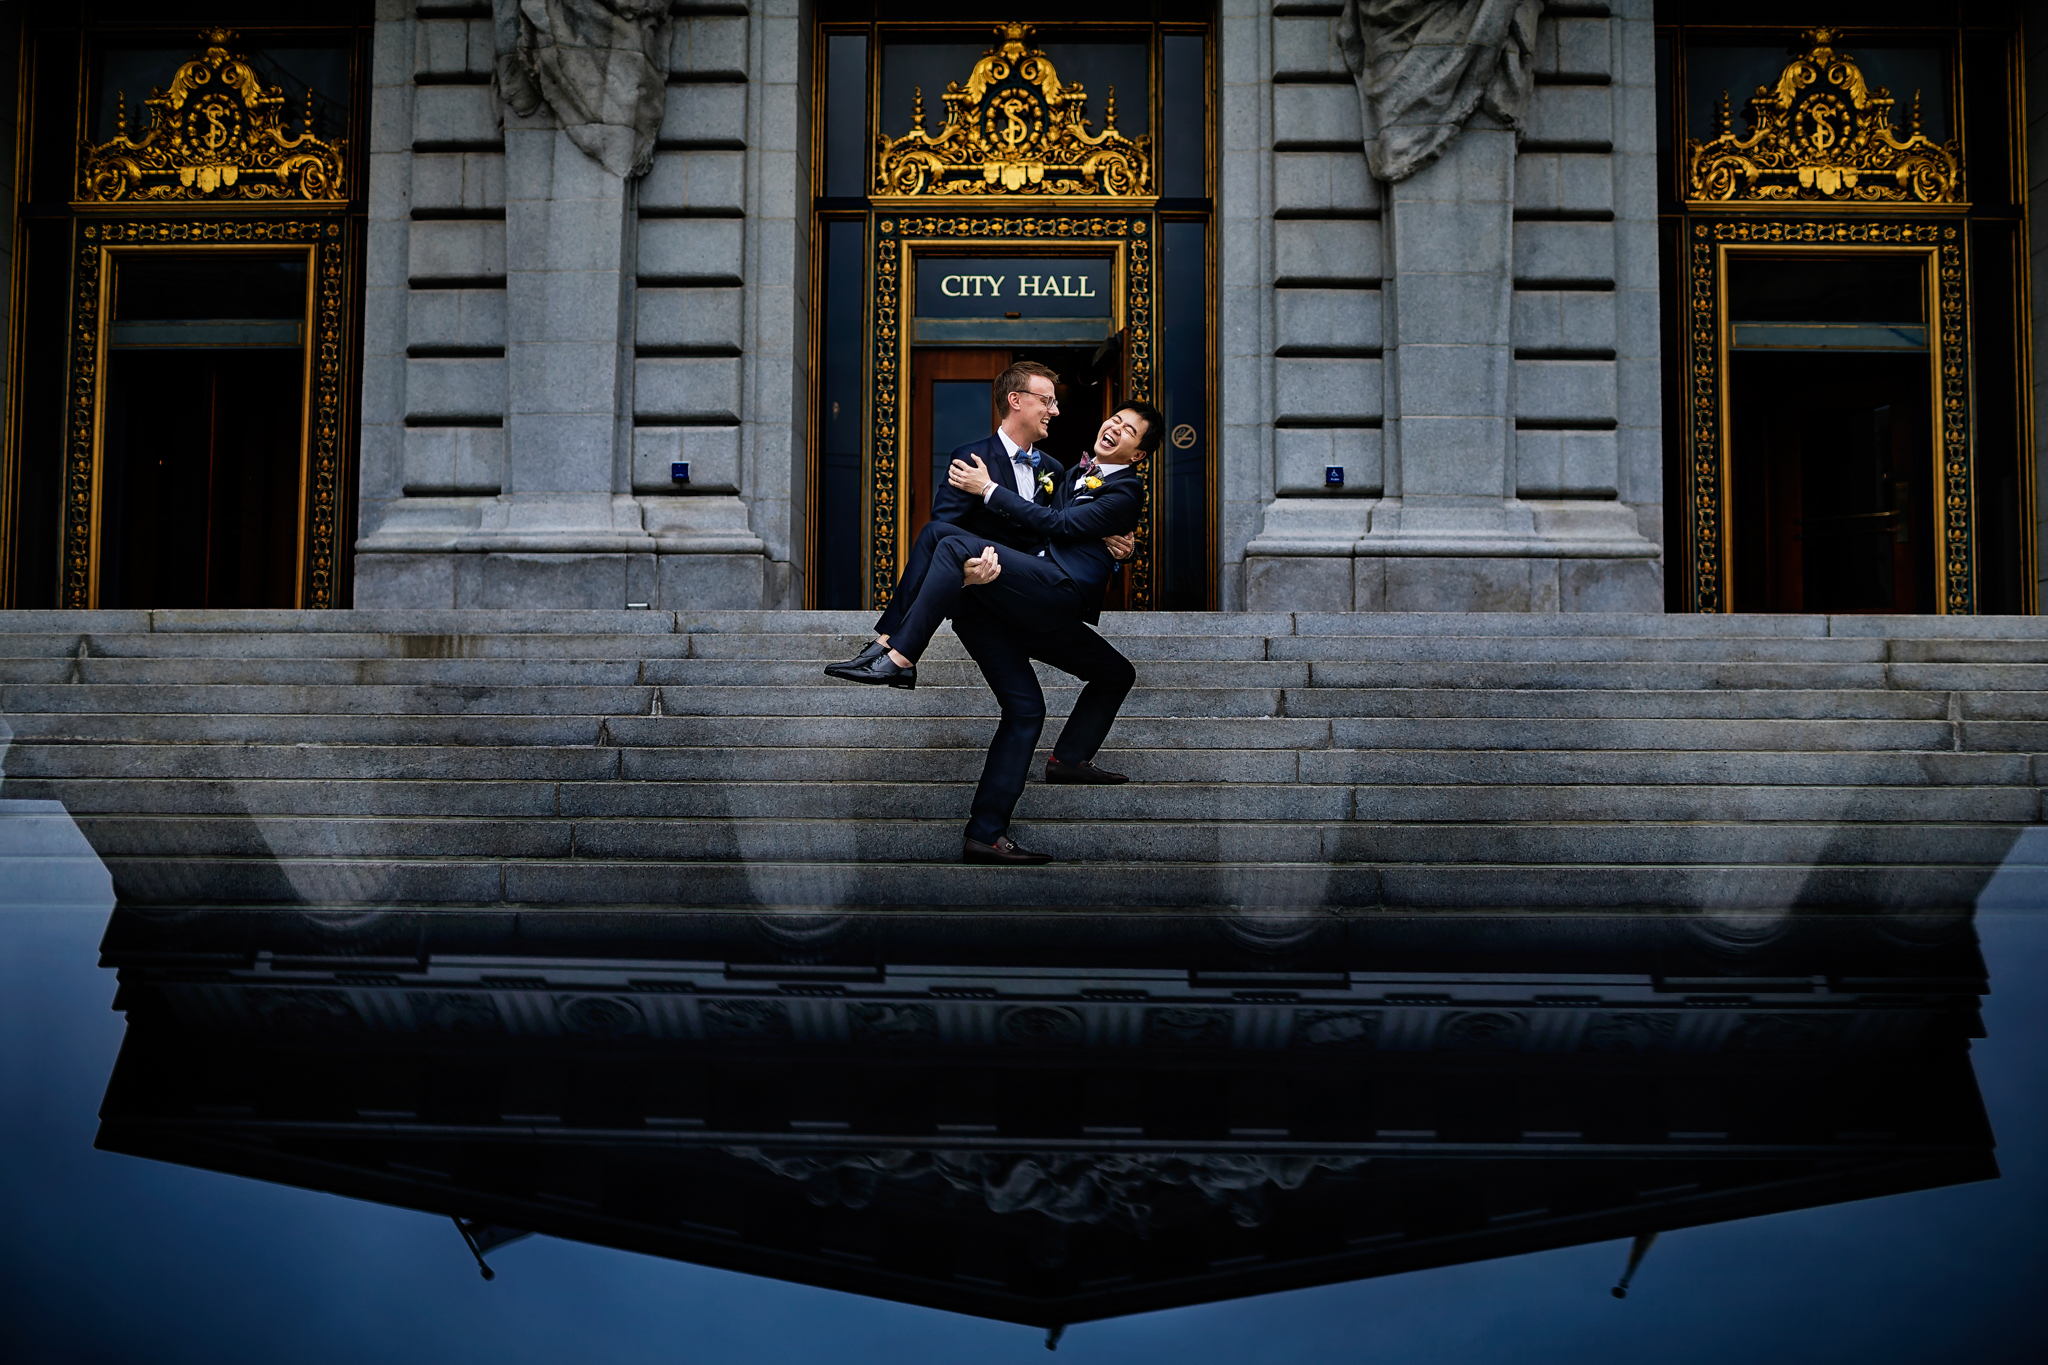 happy grooms just married at city hall- photo by Chrisman Studios